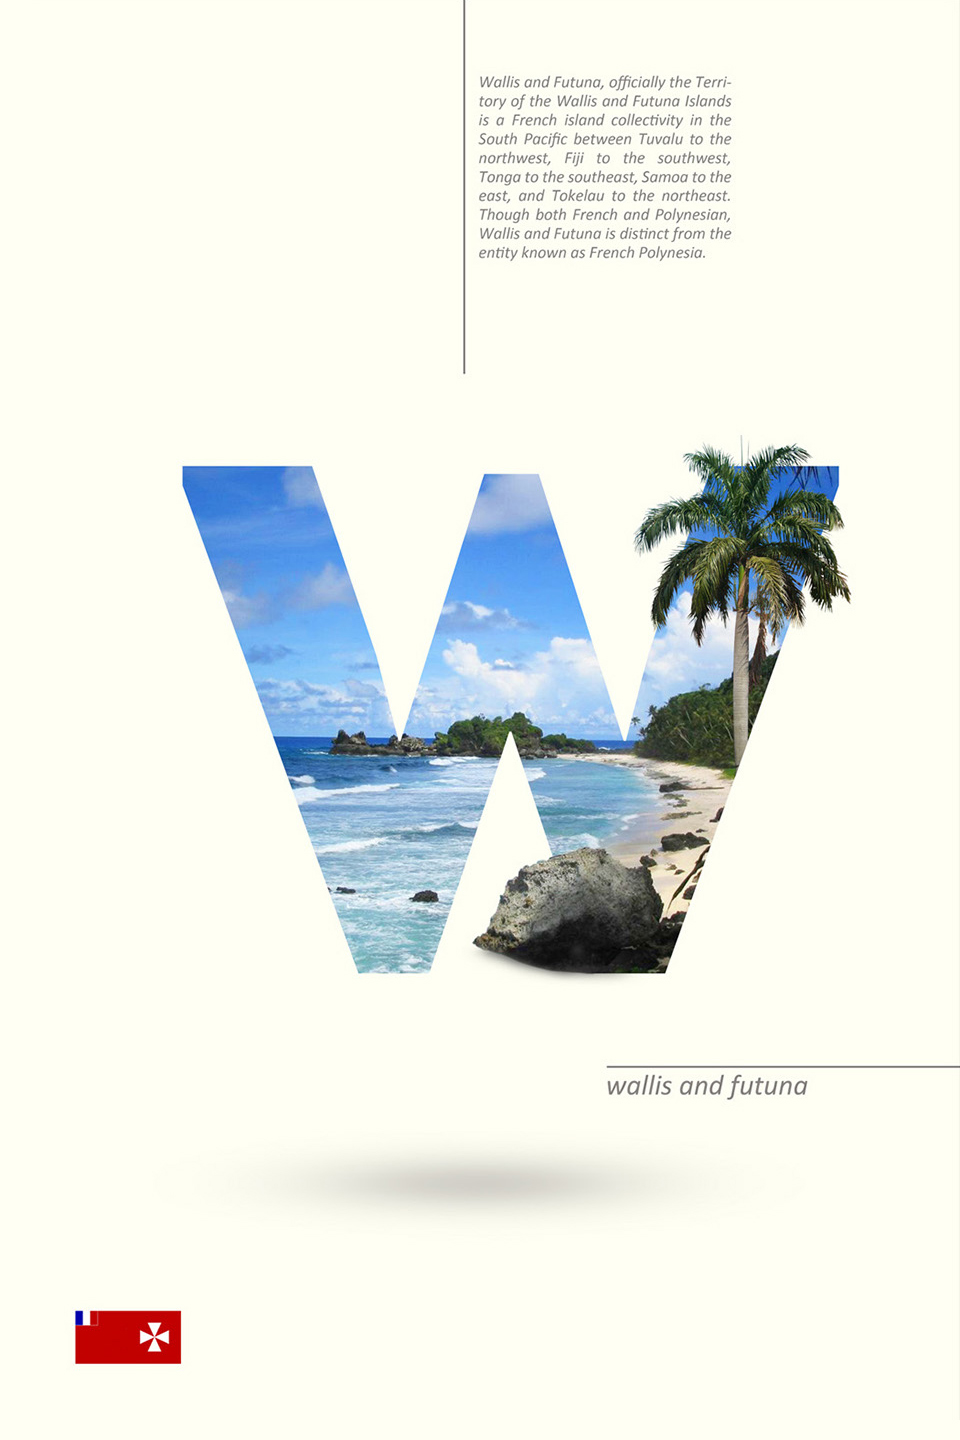 Beautiful Alphabet Series Of Countries And Their Iconic Landmarks - Wallis and Futuna